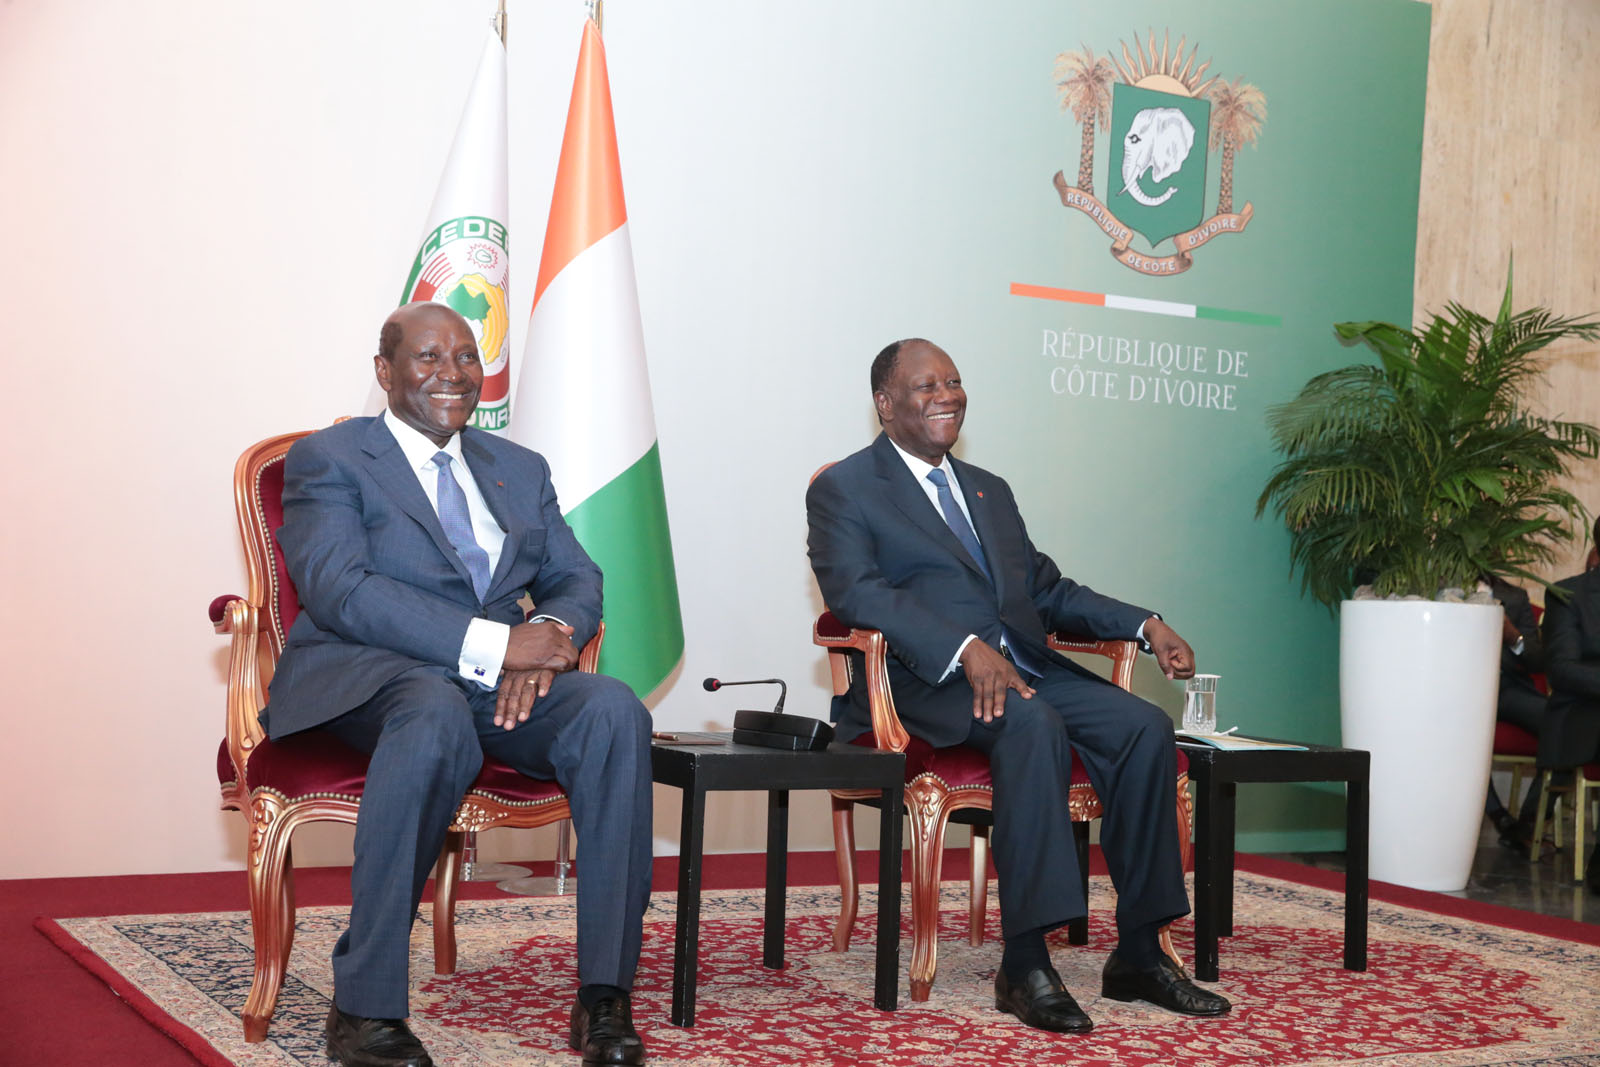 Ouattara : Duncan is the right man at the right place.